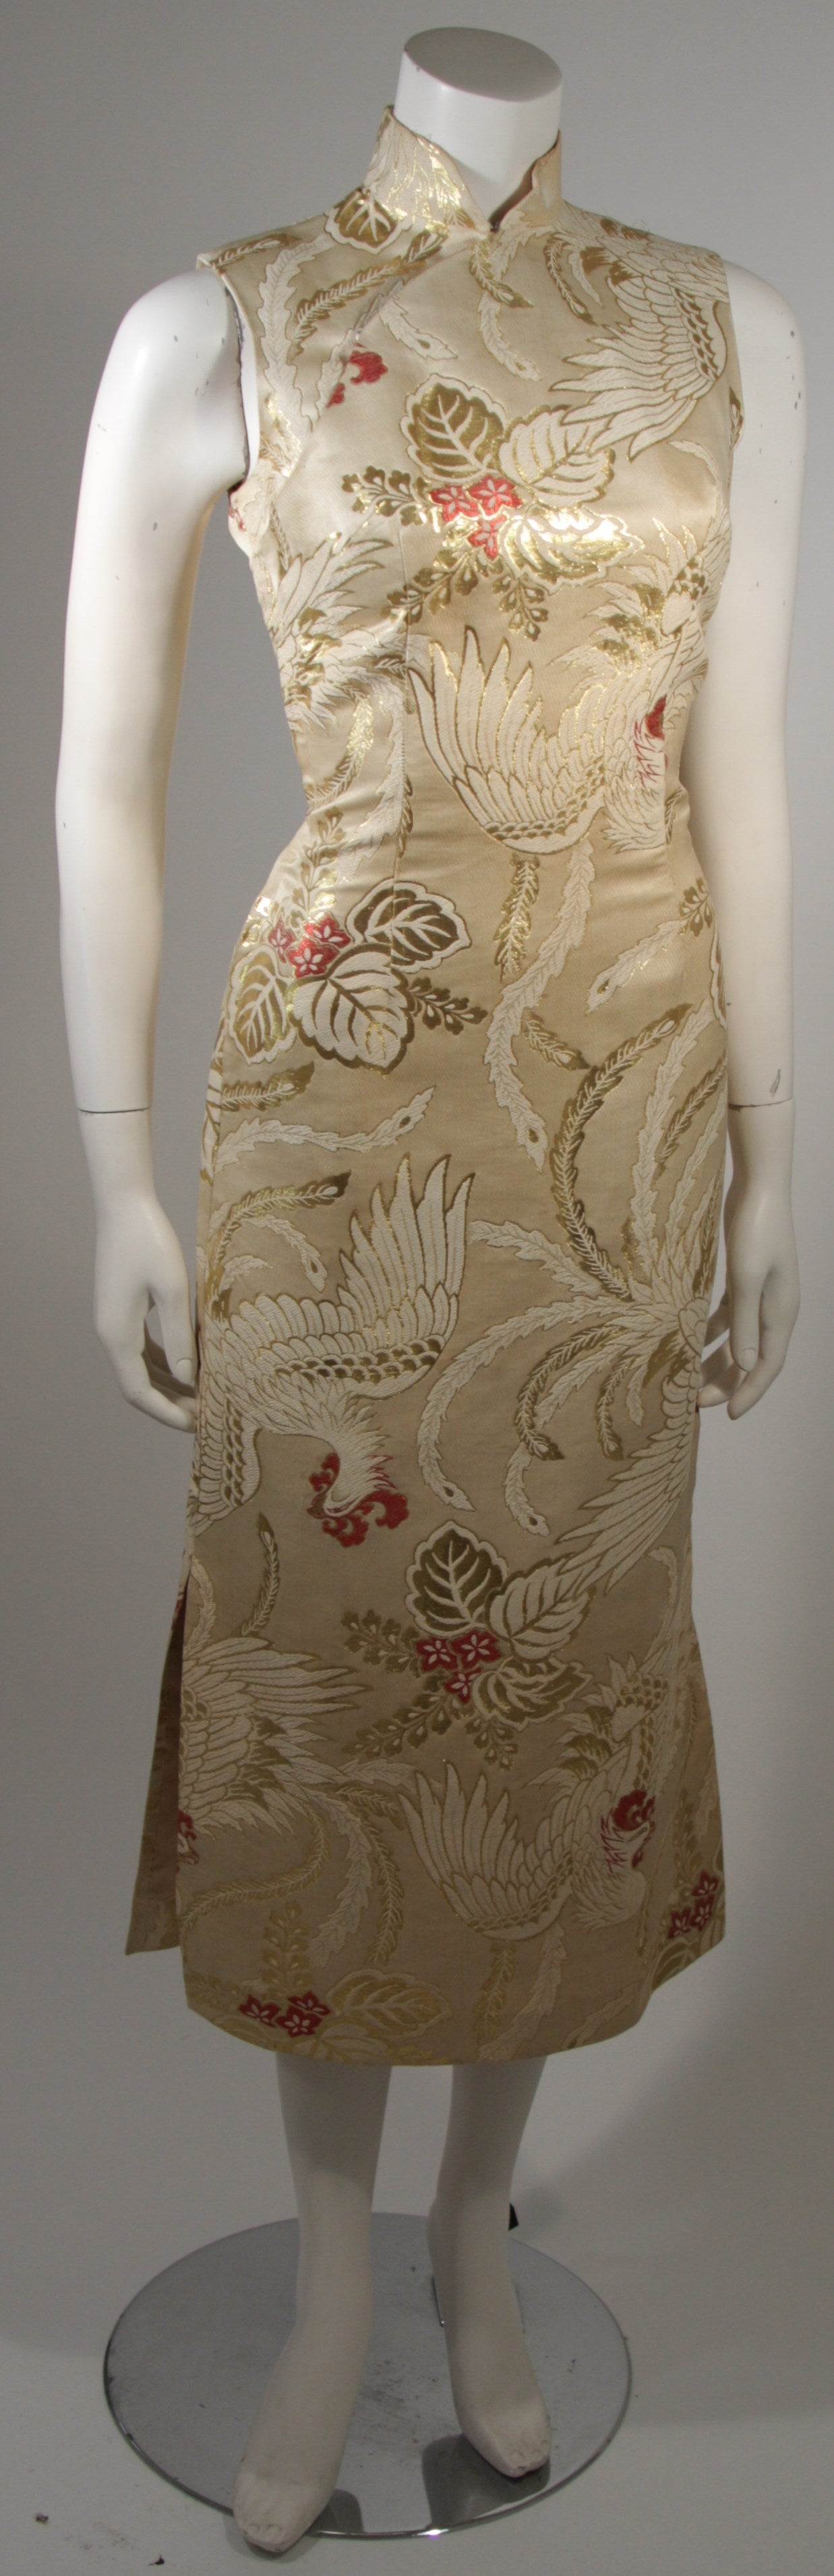 Brown 1950's Ivory and Gold Brocade Phoenix w. Red Flowers Cocktail Dress XS For Sale